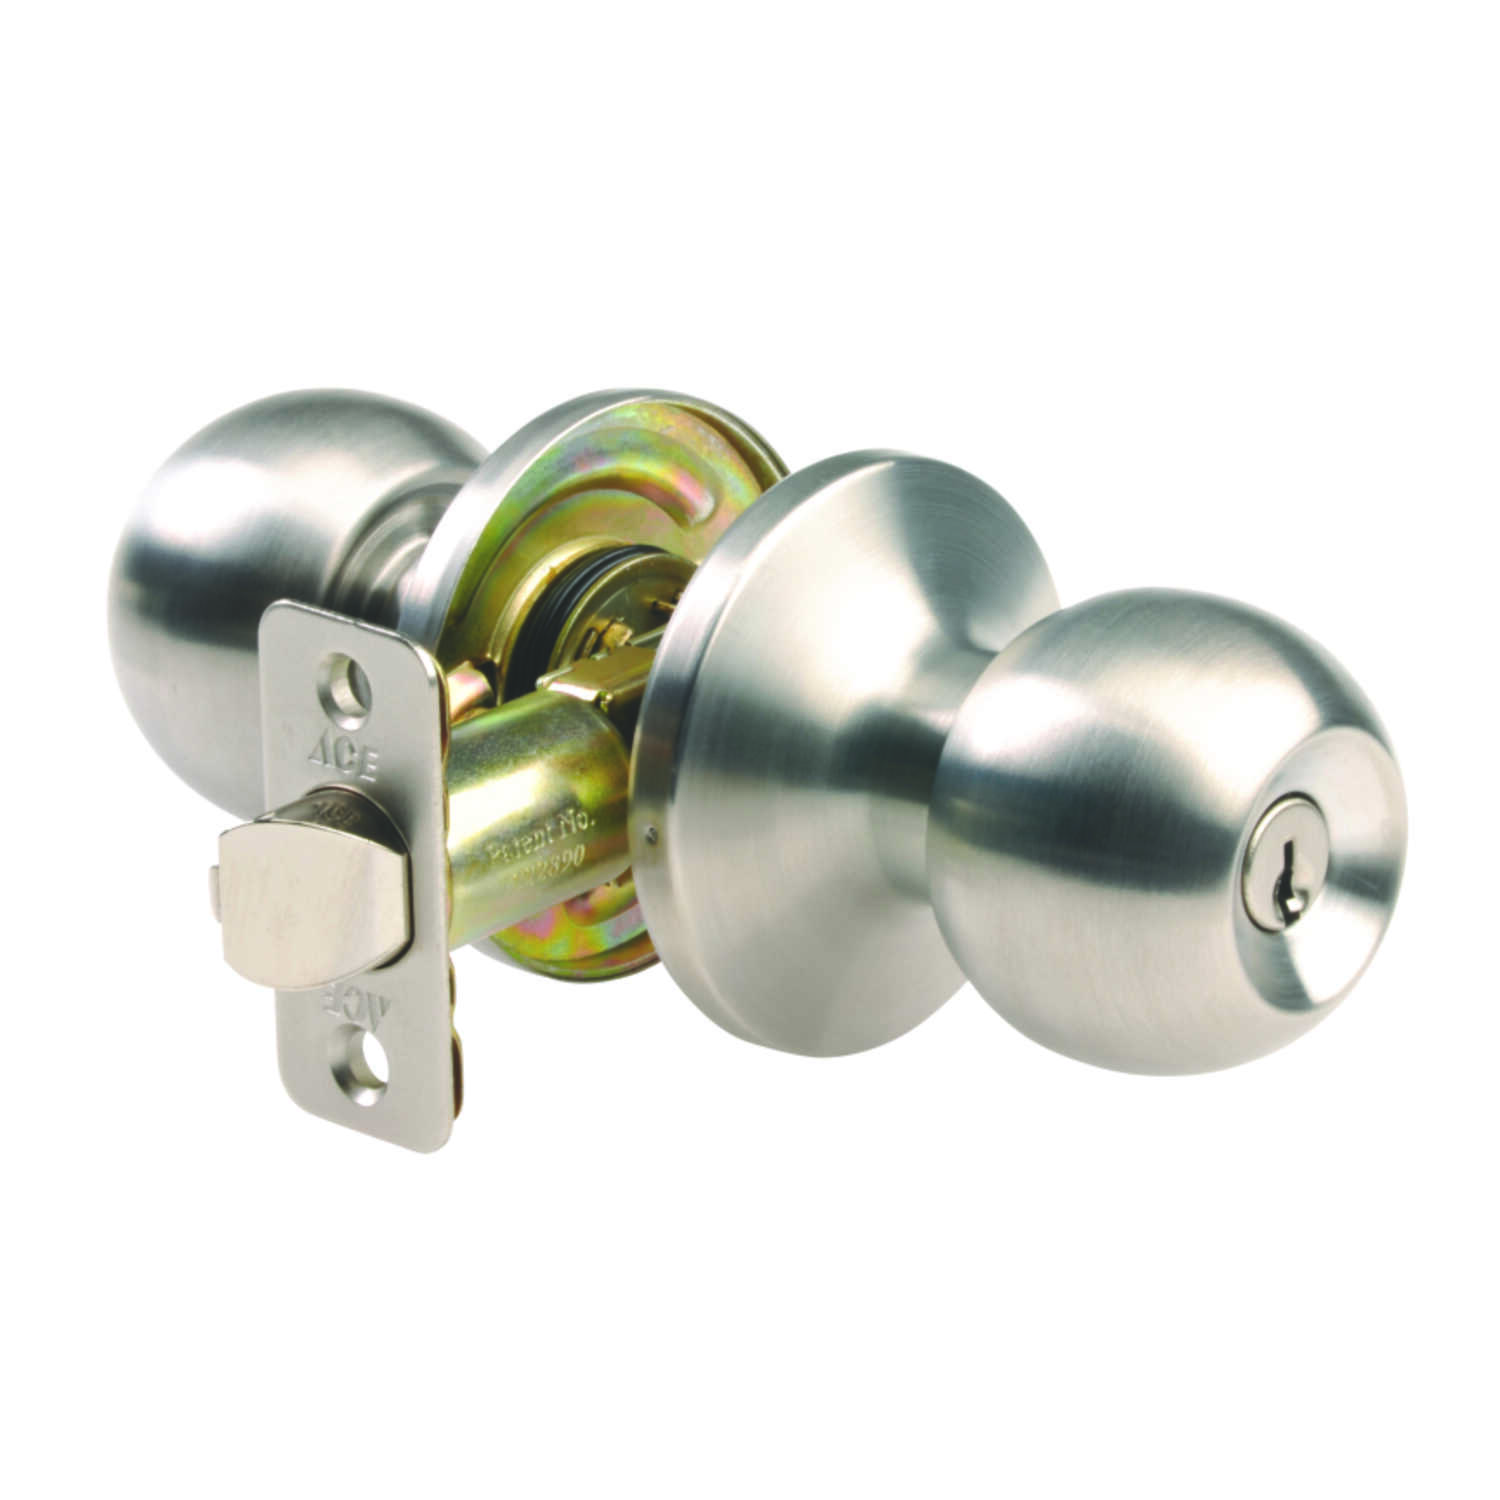 Ace  Ball  Satin  Stainless Steel  Entry Lockset  ANSI/BHMA Grade 3  1-3/4 in.